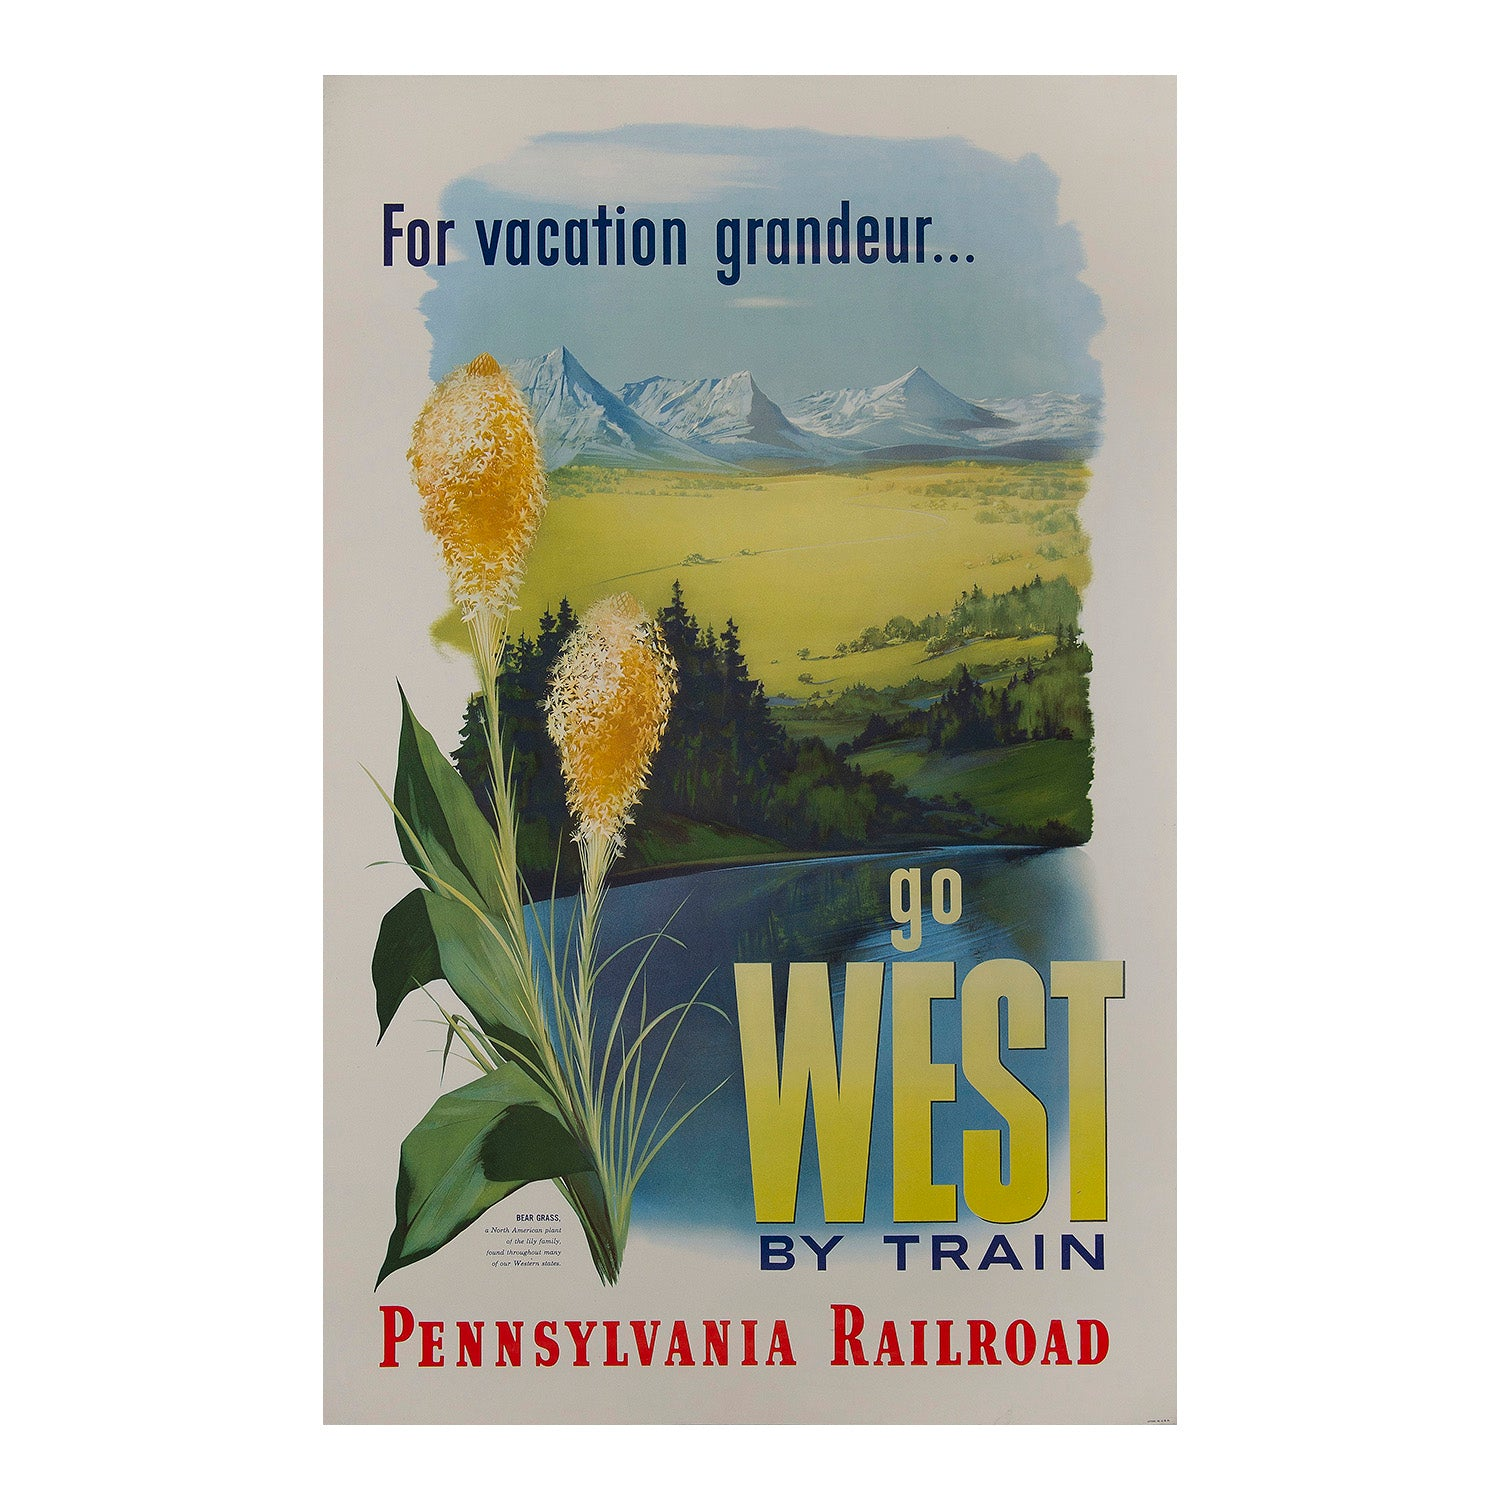 For vacation grandeur…..Go West